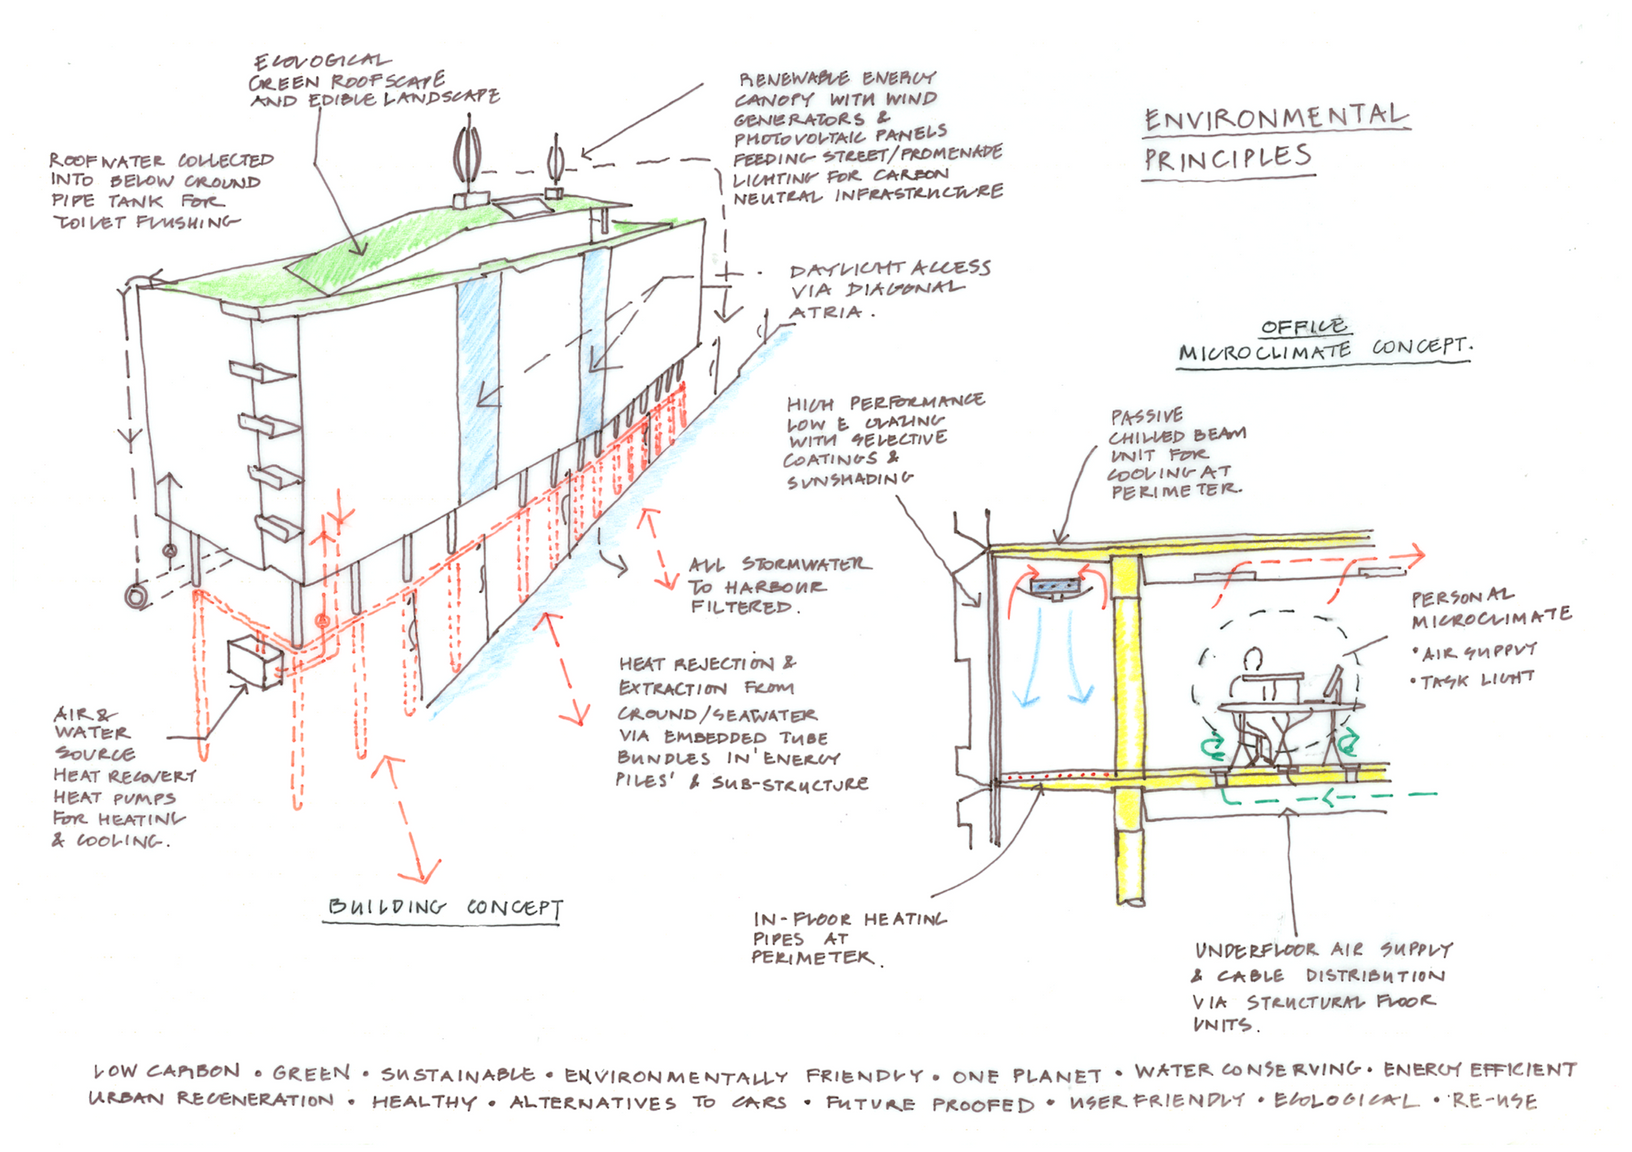 'Environmental Principles' Drawing by David Fullbrook / eCubed Building Workshop